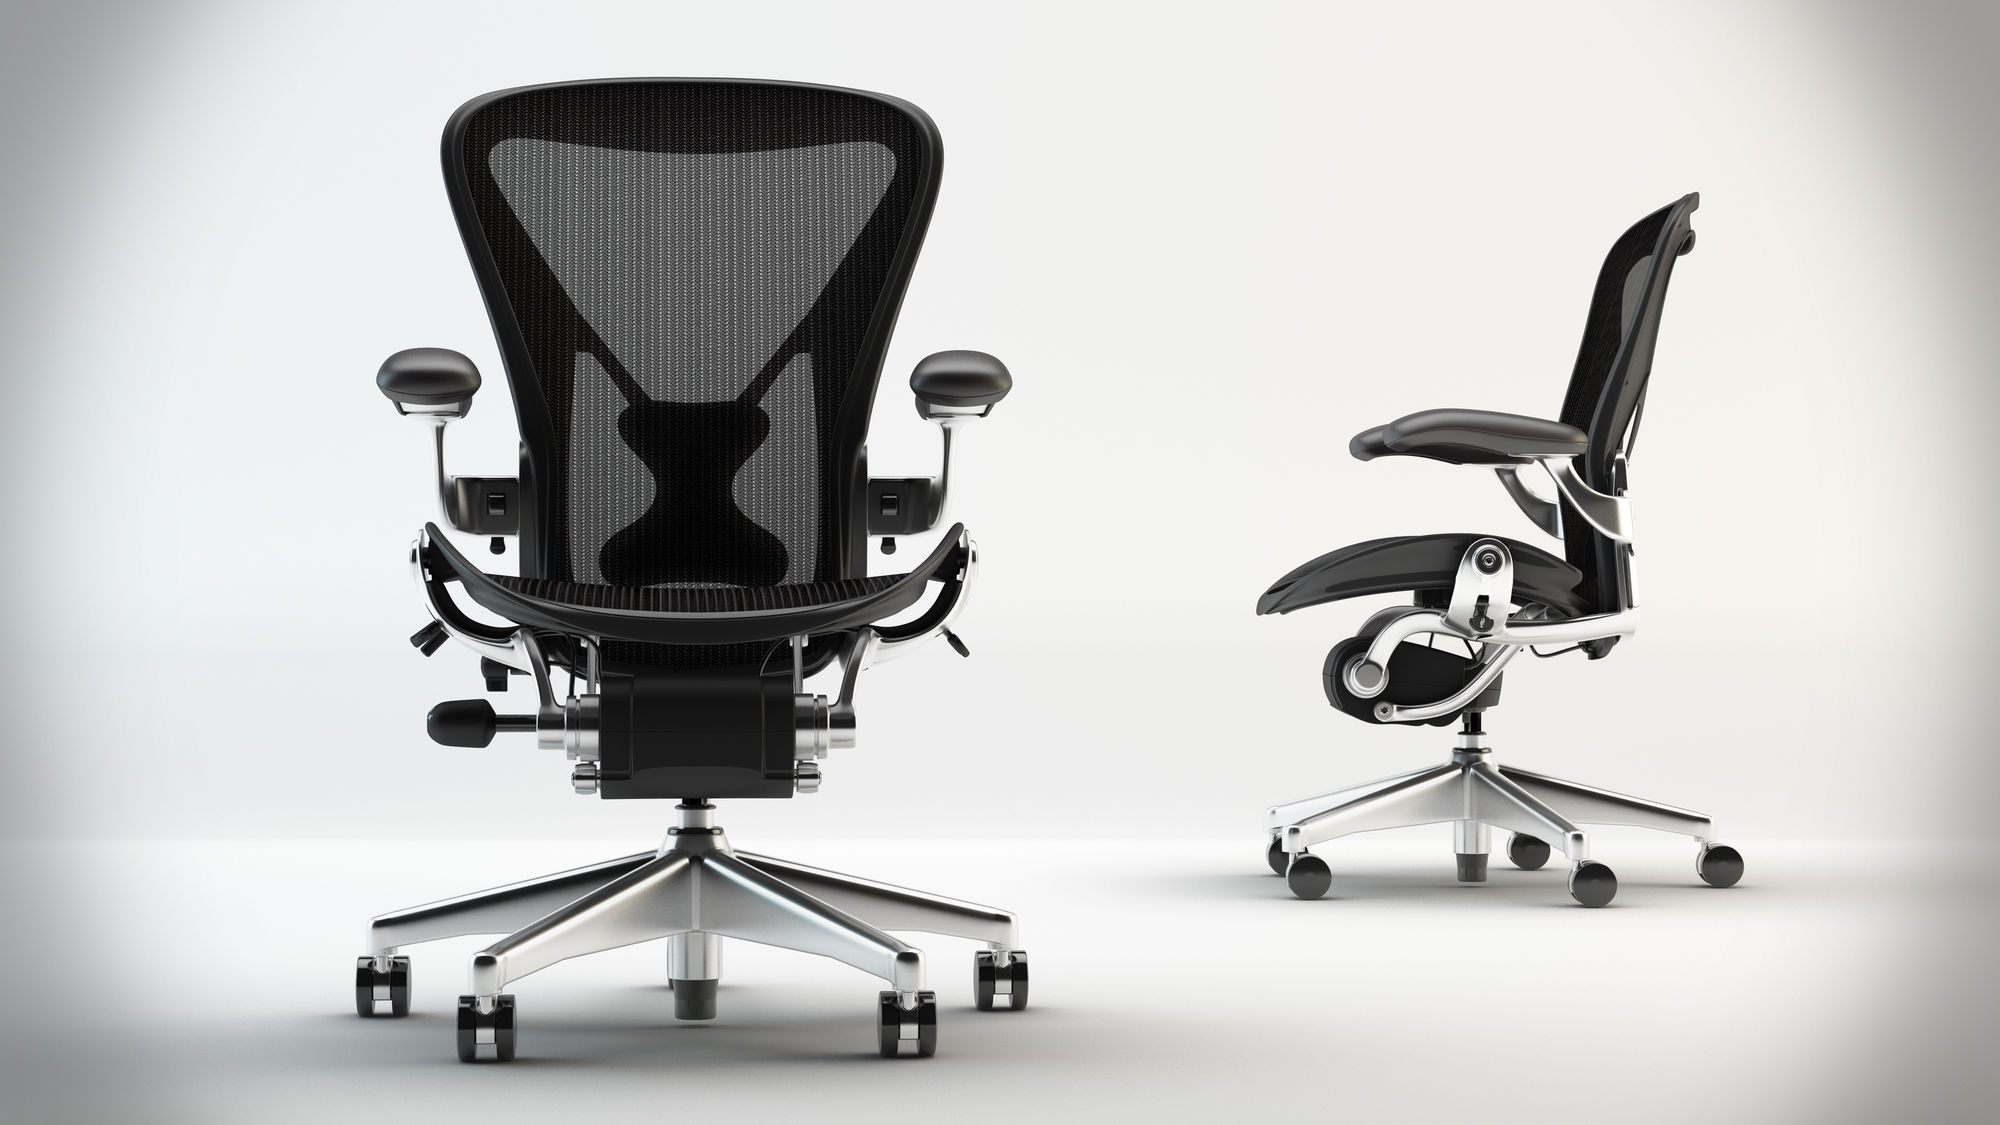 best chair for pc gaming 2016 rocking in a bag 10 chairs 2015 gamers decide aeron by herman miller